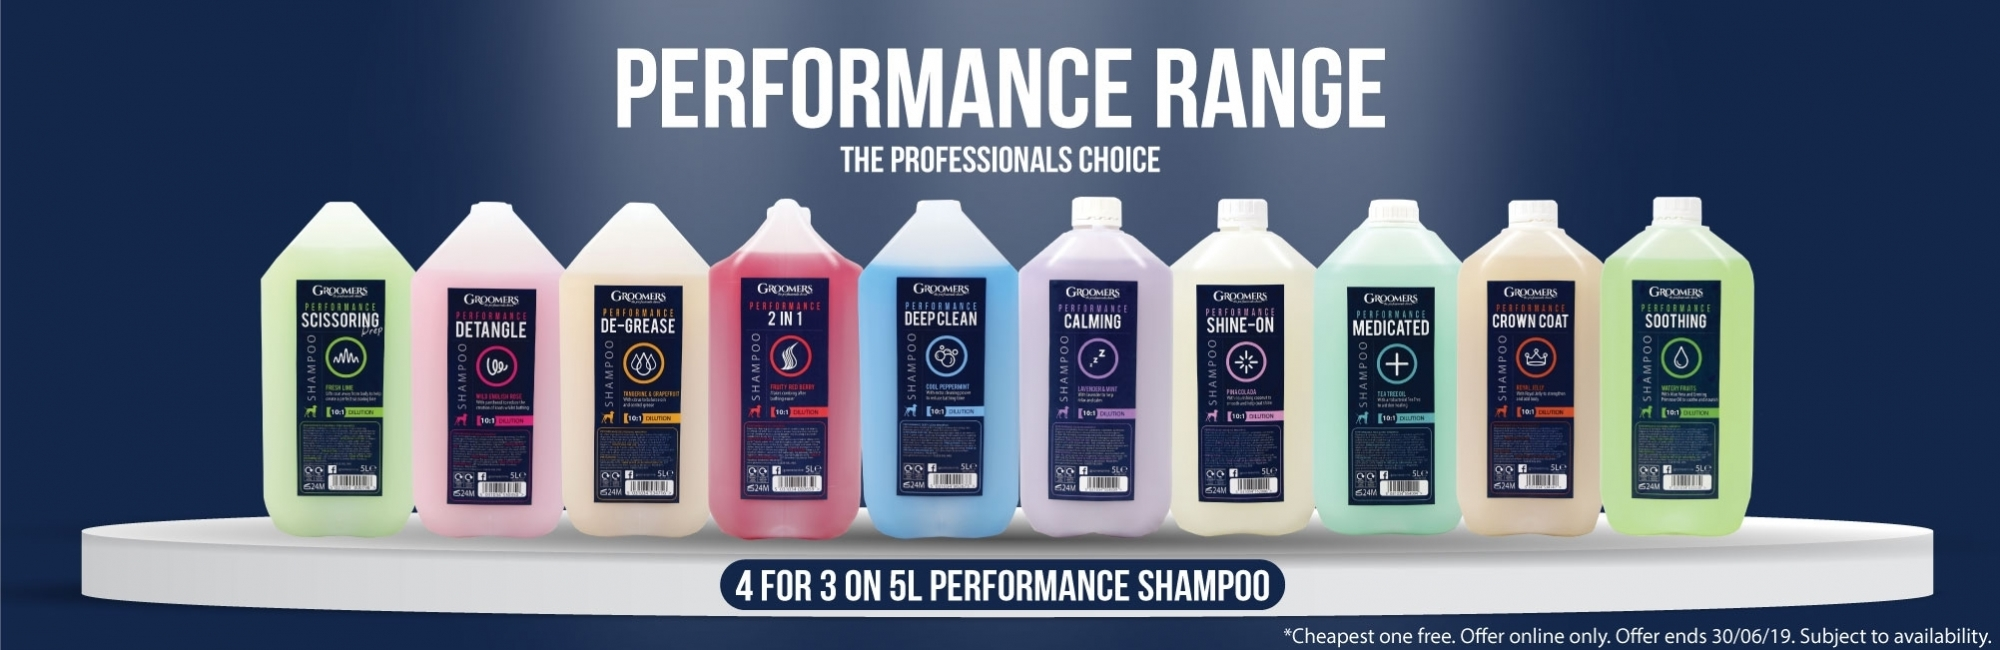 4 For 3 On 5L Groomers Performance Shampoo